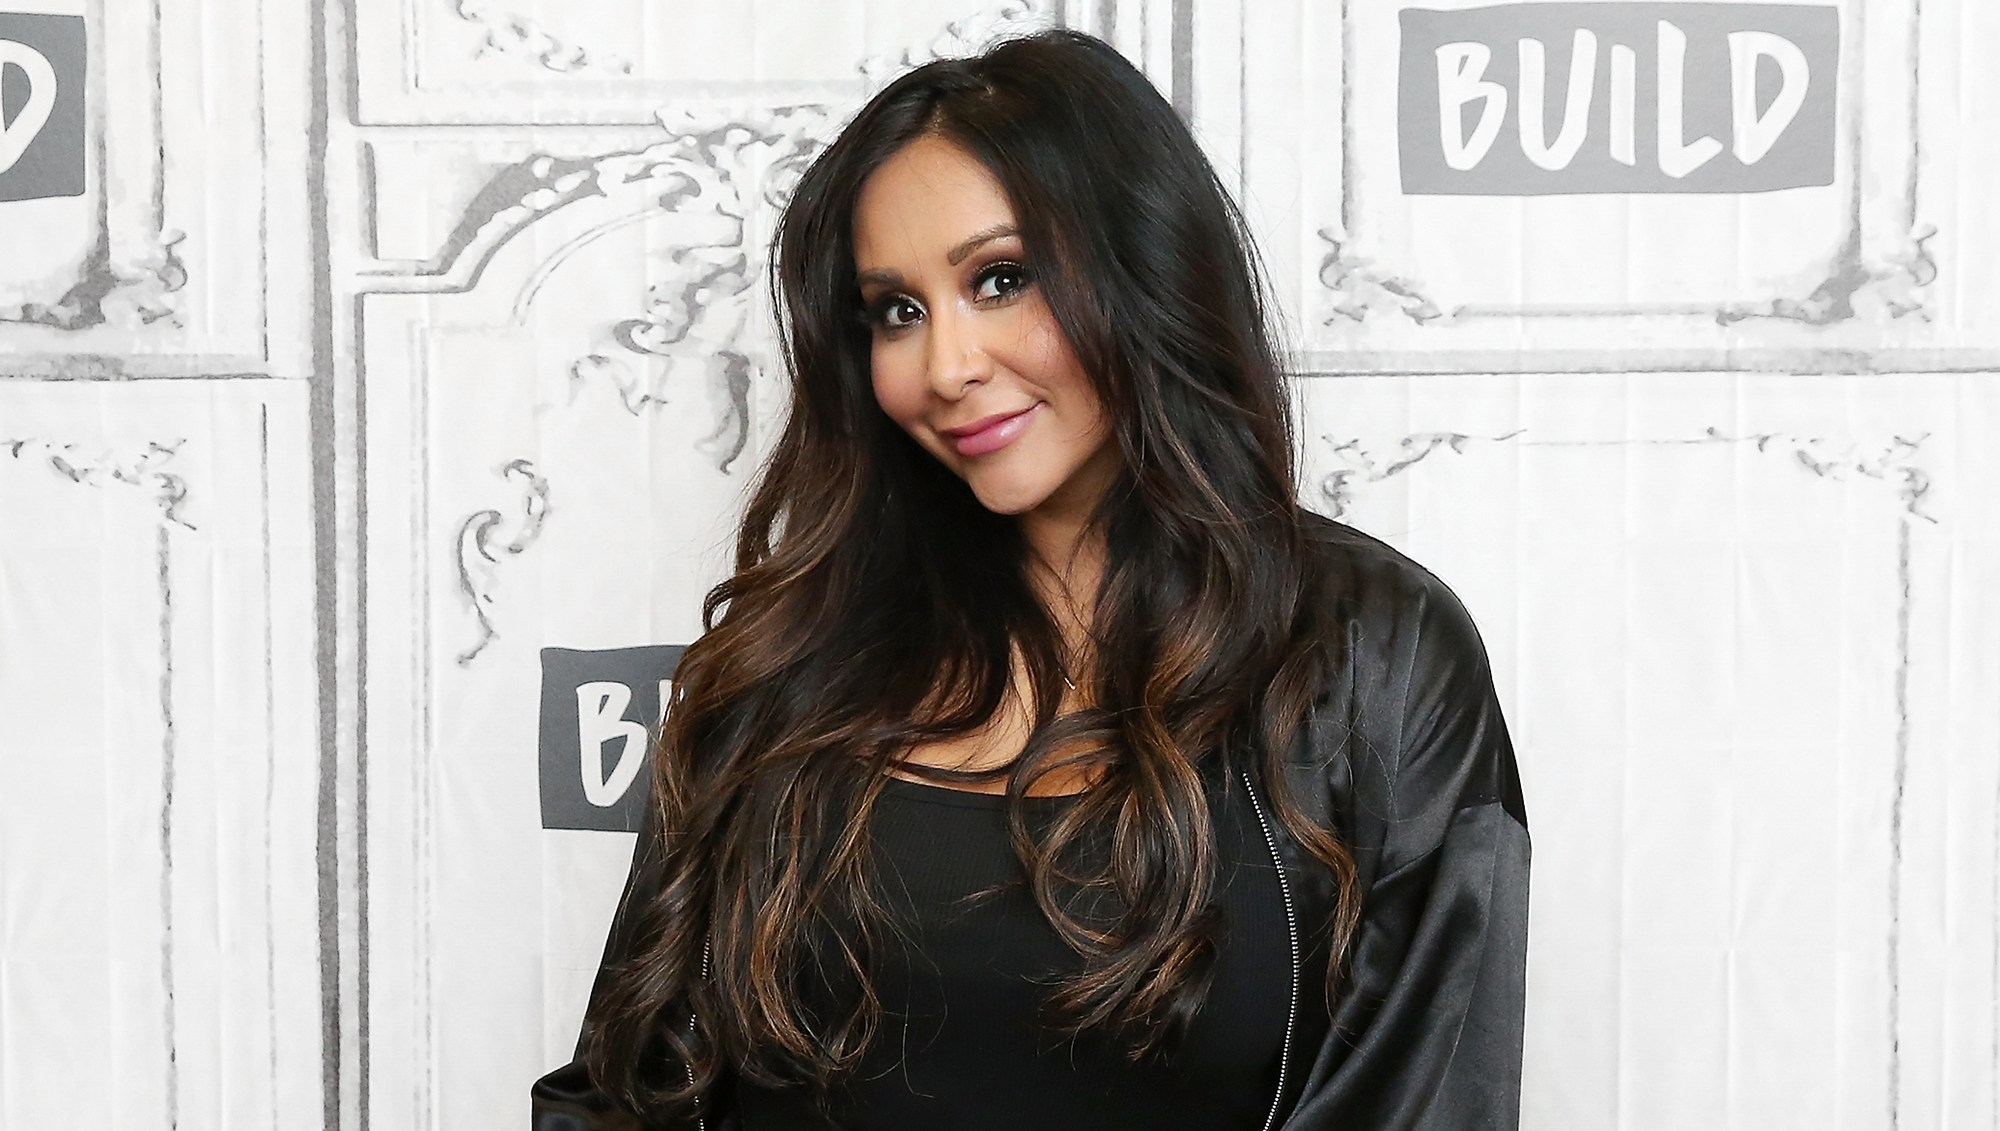 Pregnant Snooki Announces the Sex of Baby No. 3